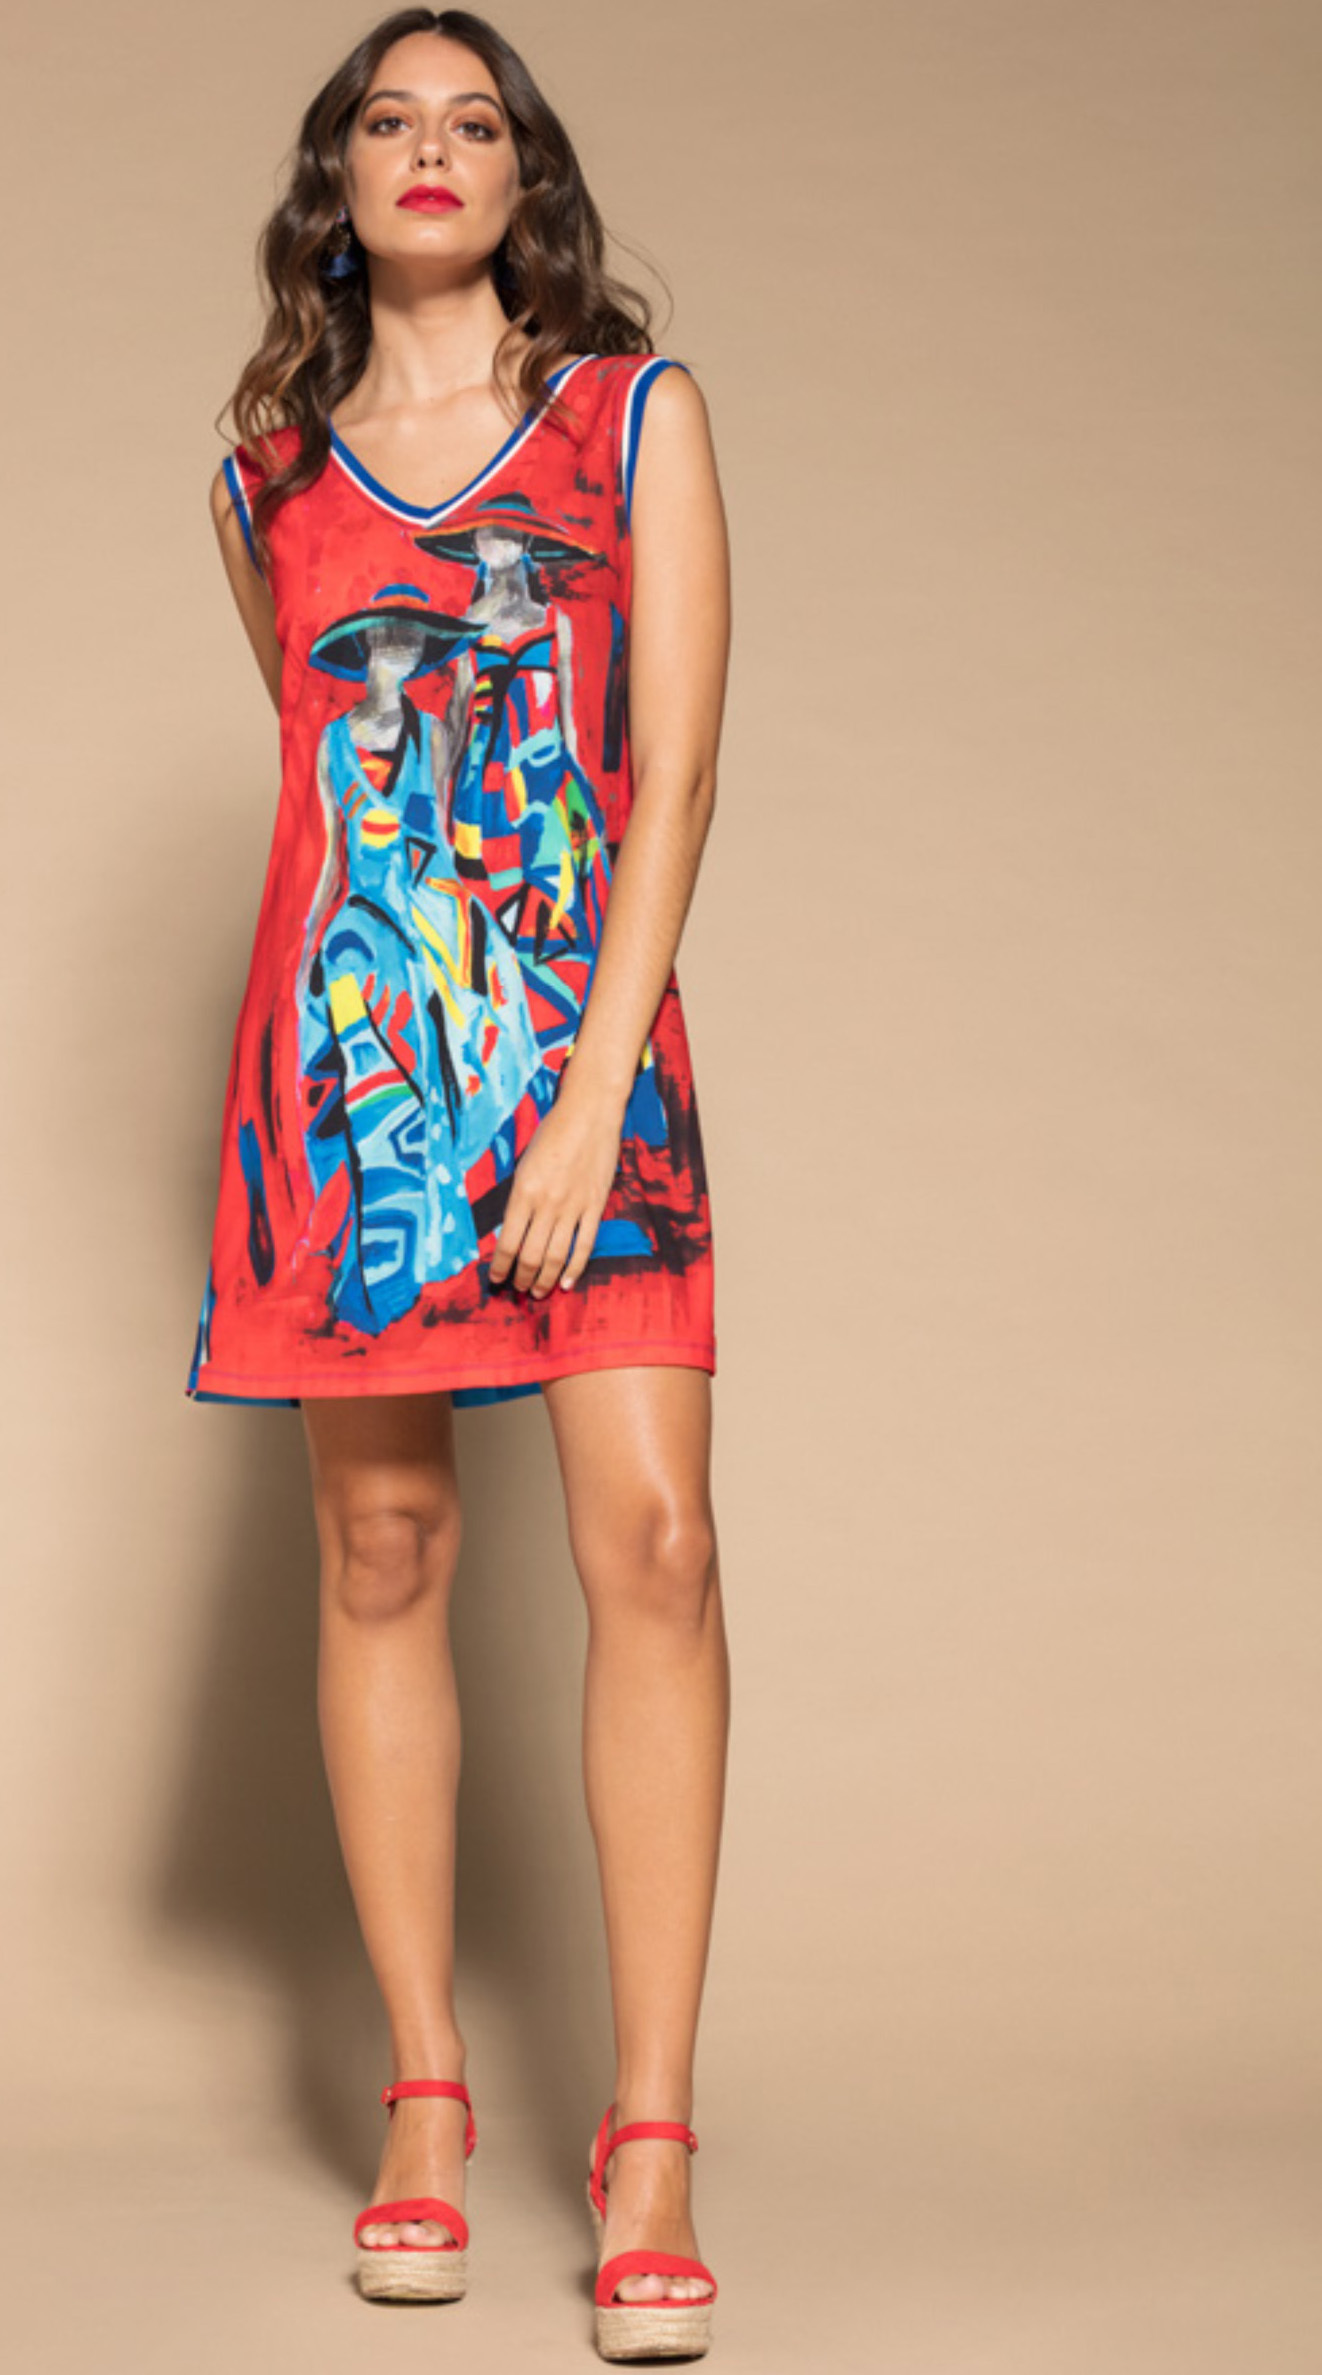 Maloka: Colors Of Picasso's Gypsy Beauty Abstract Art Tunic/Dress MK_GENEVIEVE